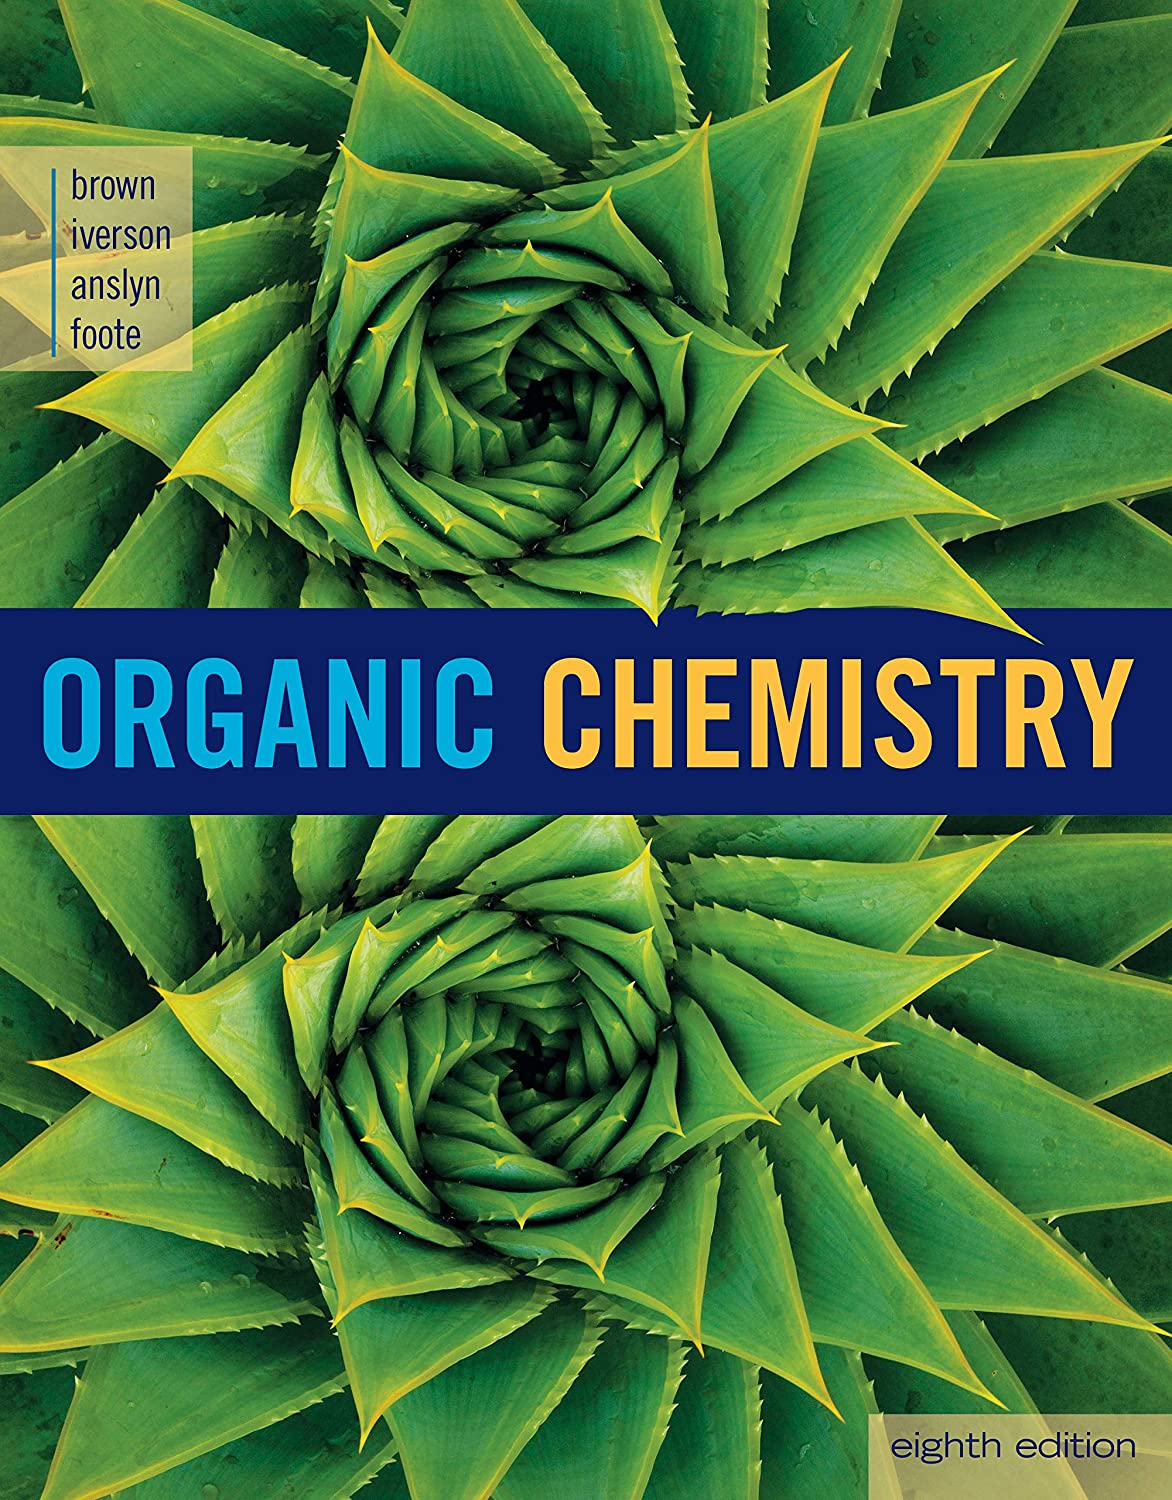 Amazon.com: Student Solutions Manual eBook for Brown/Iverson/Anslyn/Foote's  Organic Chemistry, 8th Edition , 4 terms (24 months [Online Code]: Software